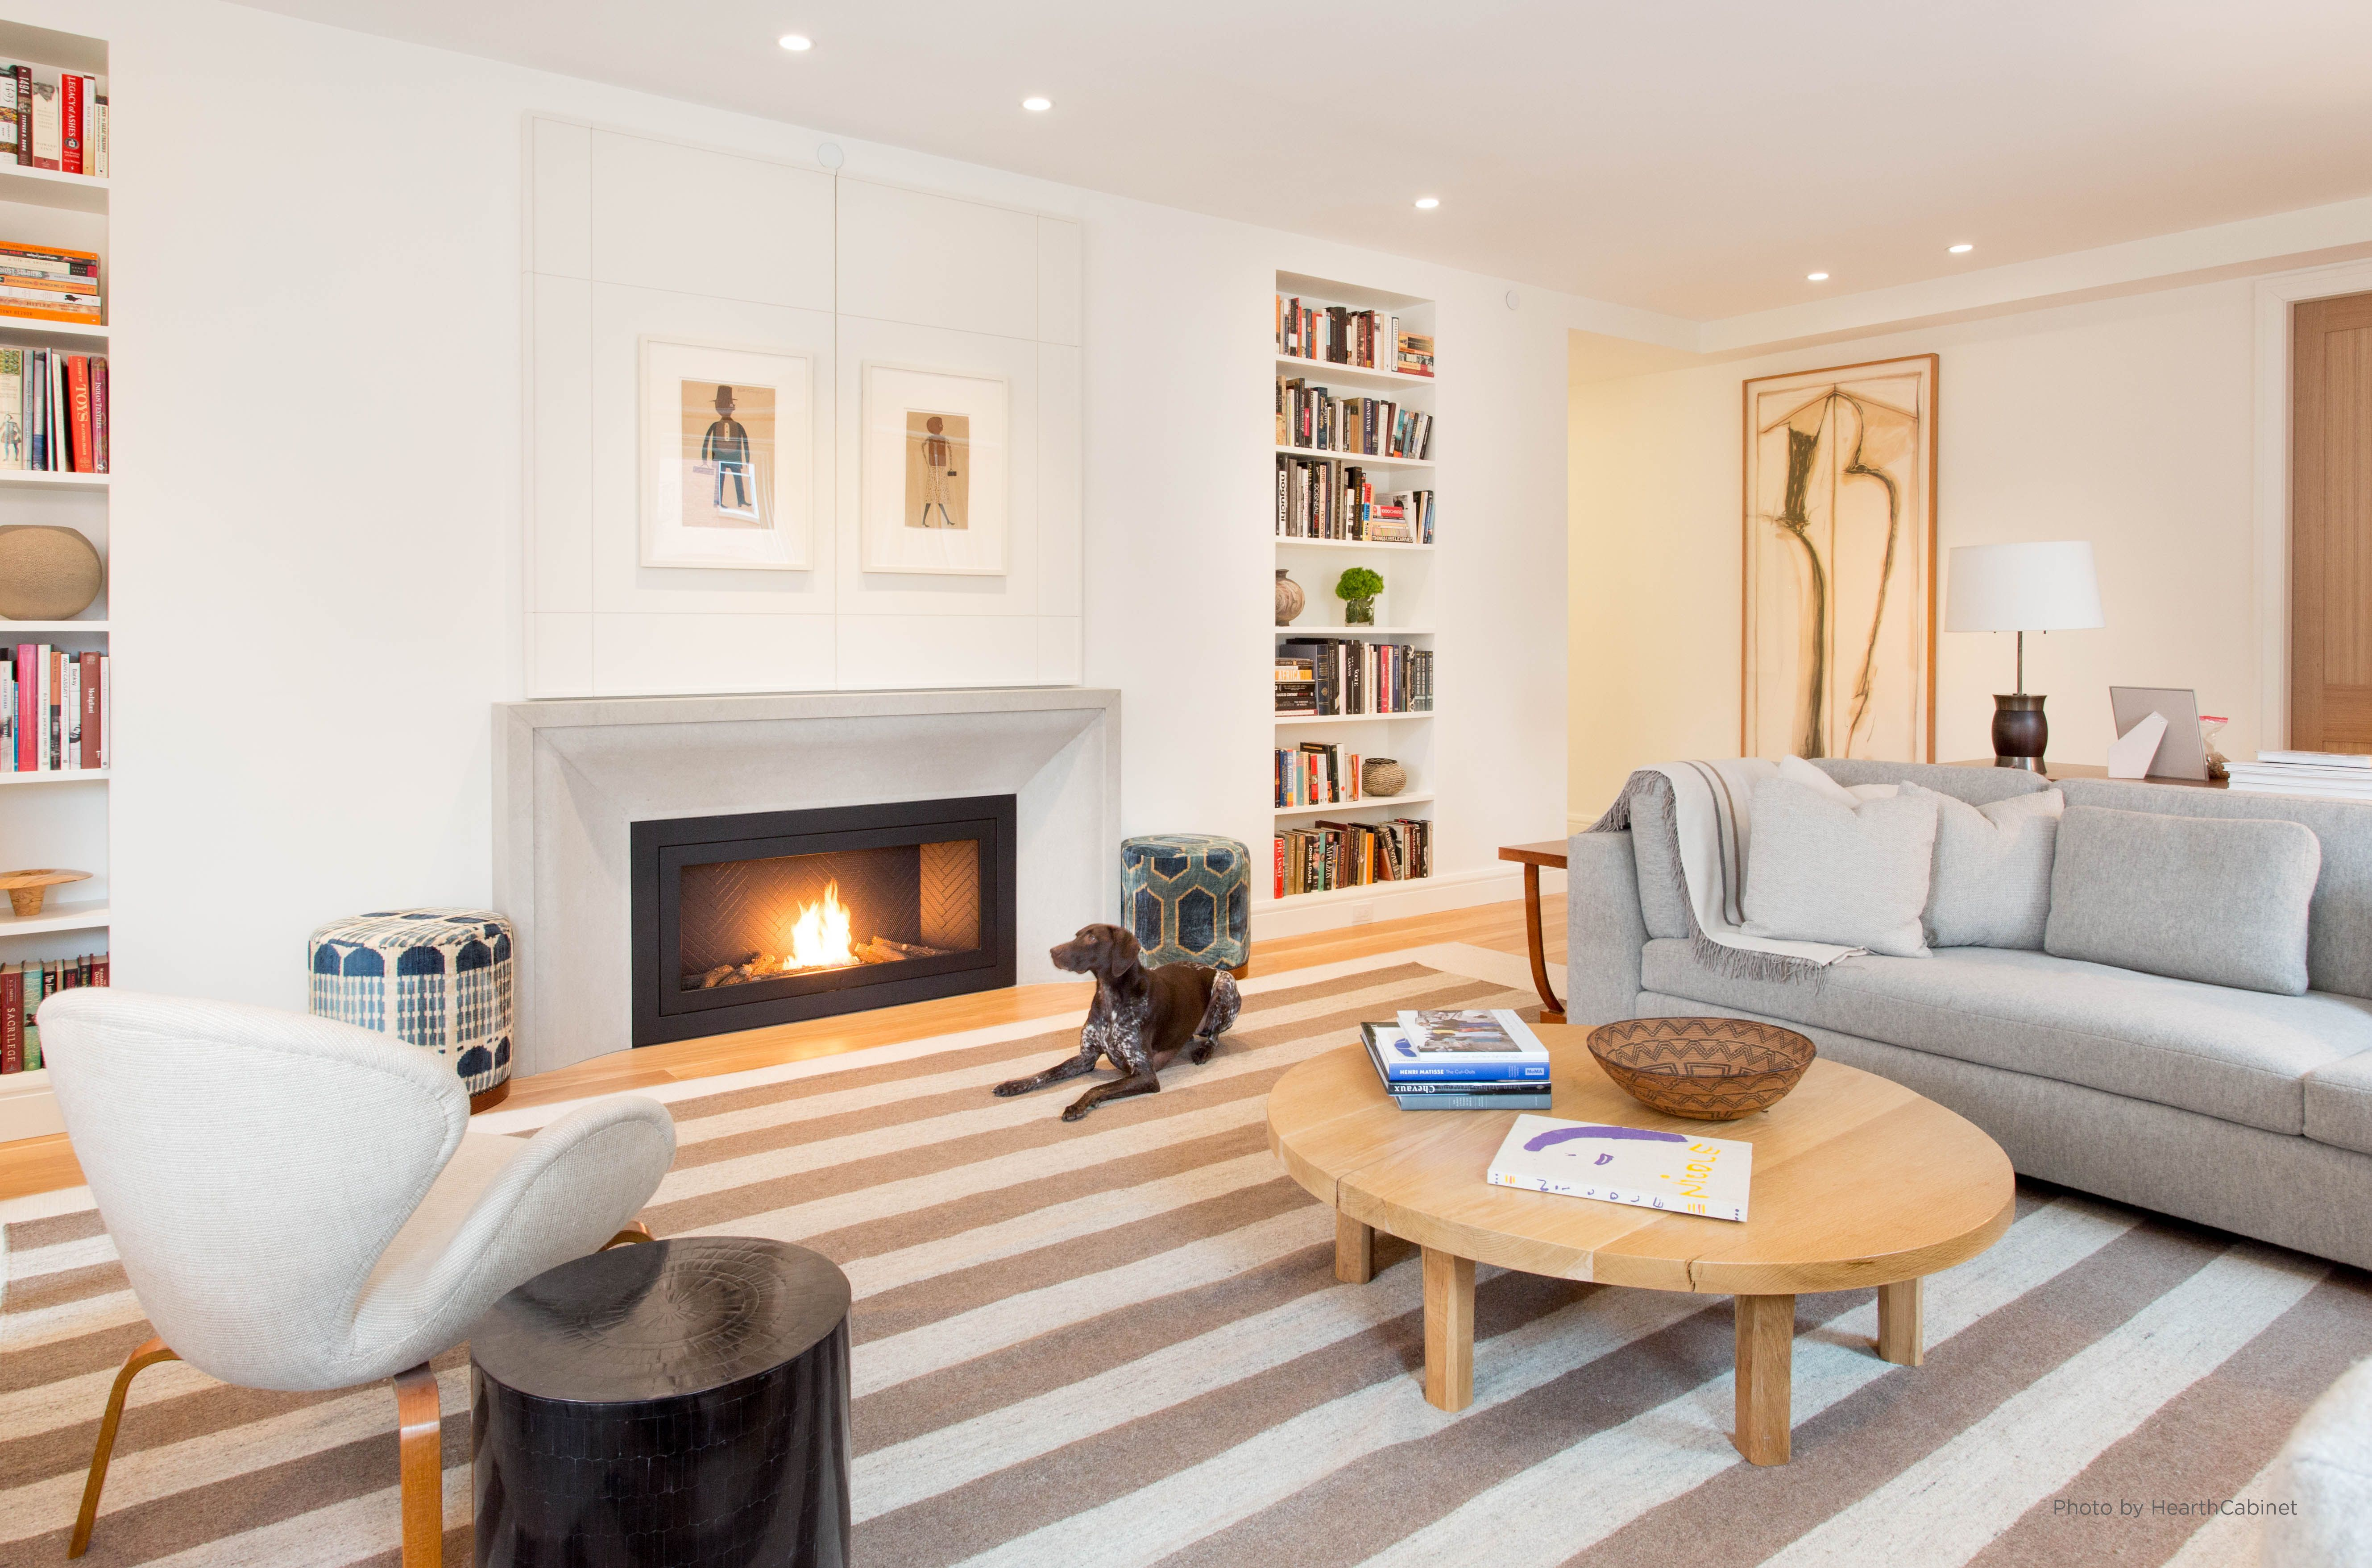 This Custom Designed Fireplace Is A Perfect Match With The Warm